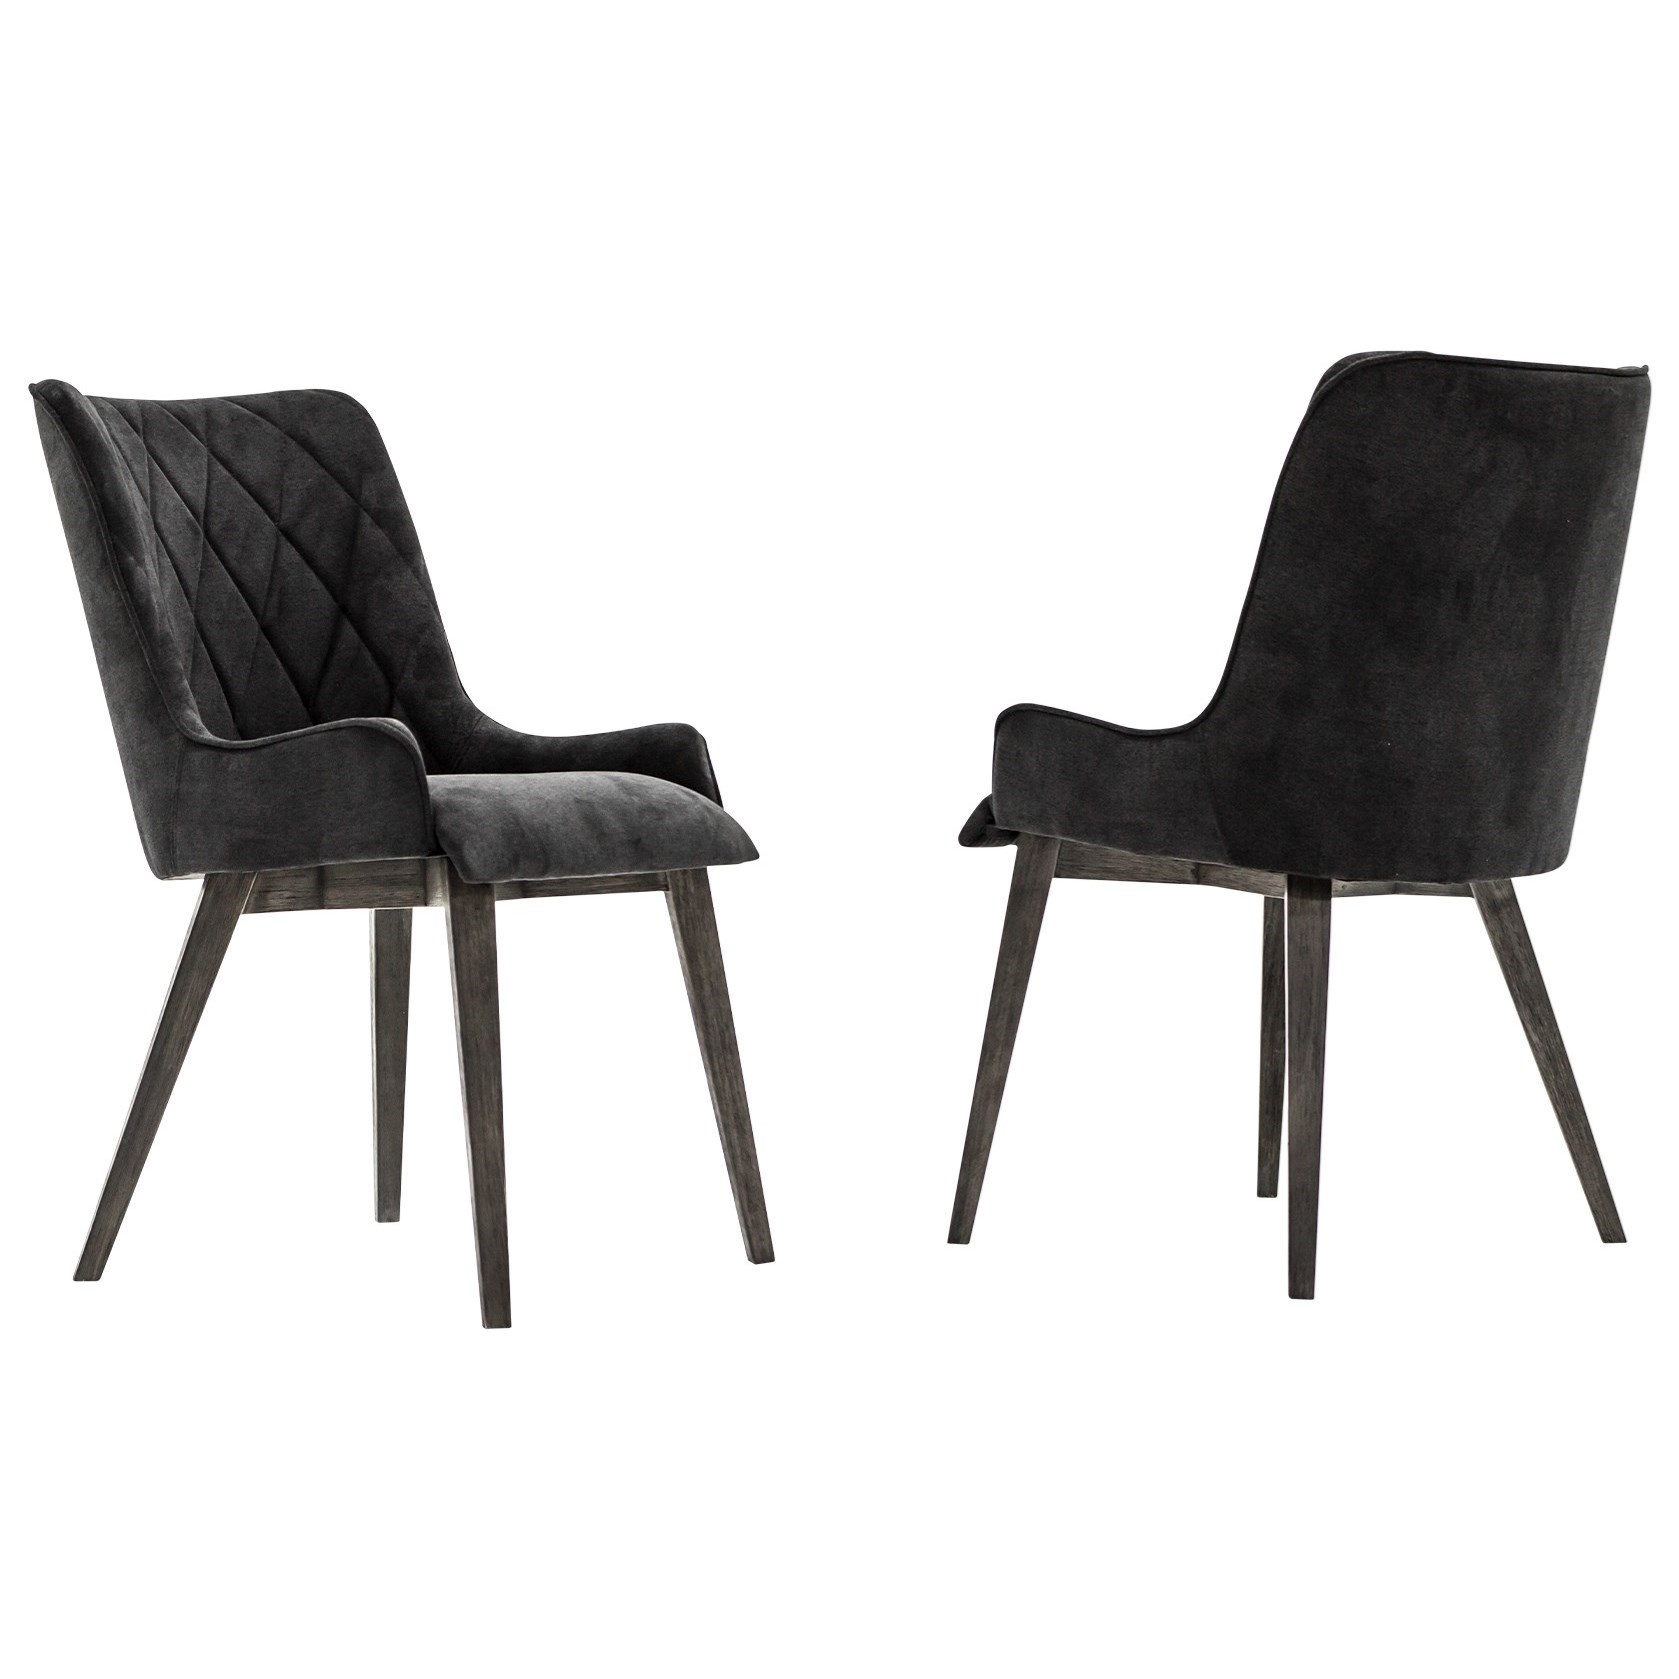 Alana Midnight Upholstered Dining Chair Set at Sadler's Home Furnishings